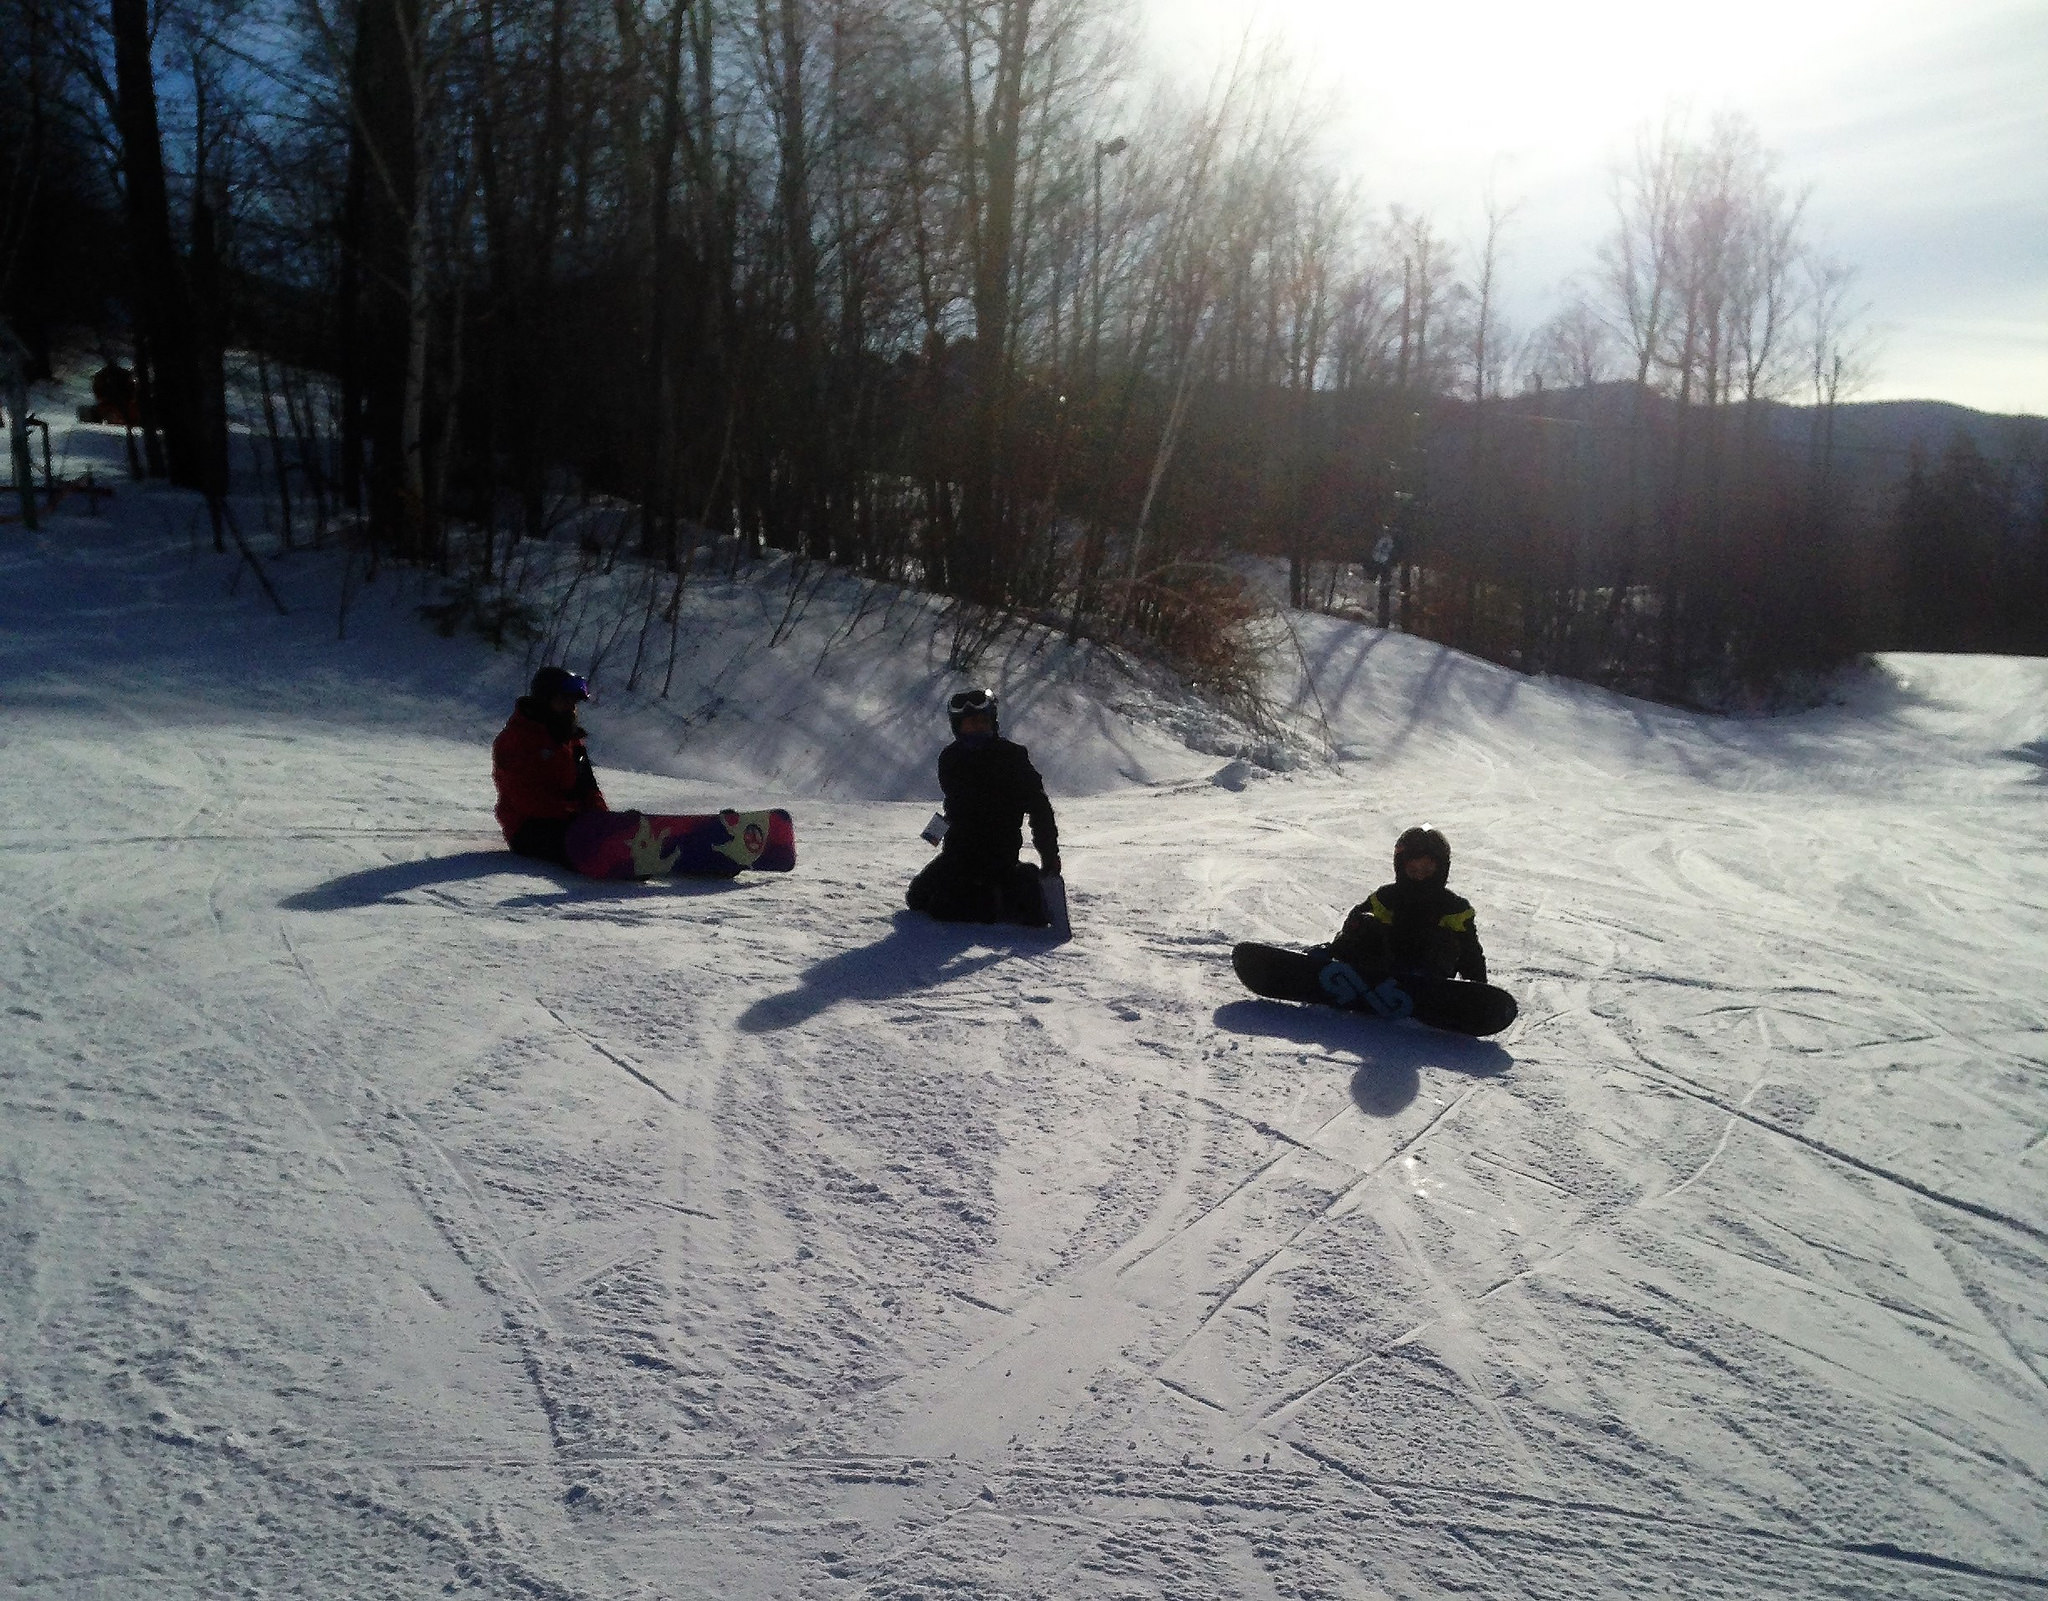 winter activities - snowboarding family in vermont, smugglers notch resort